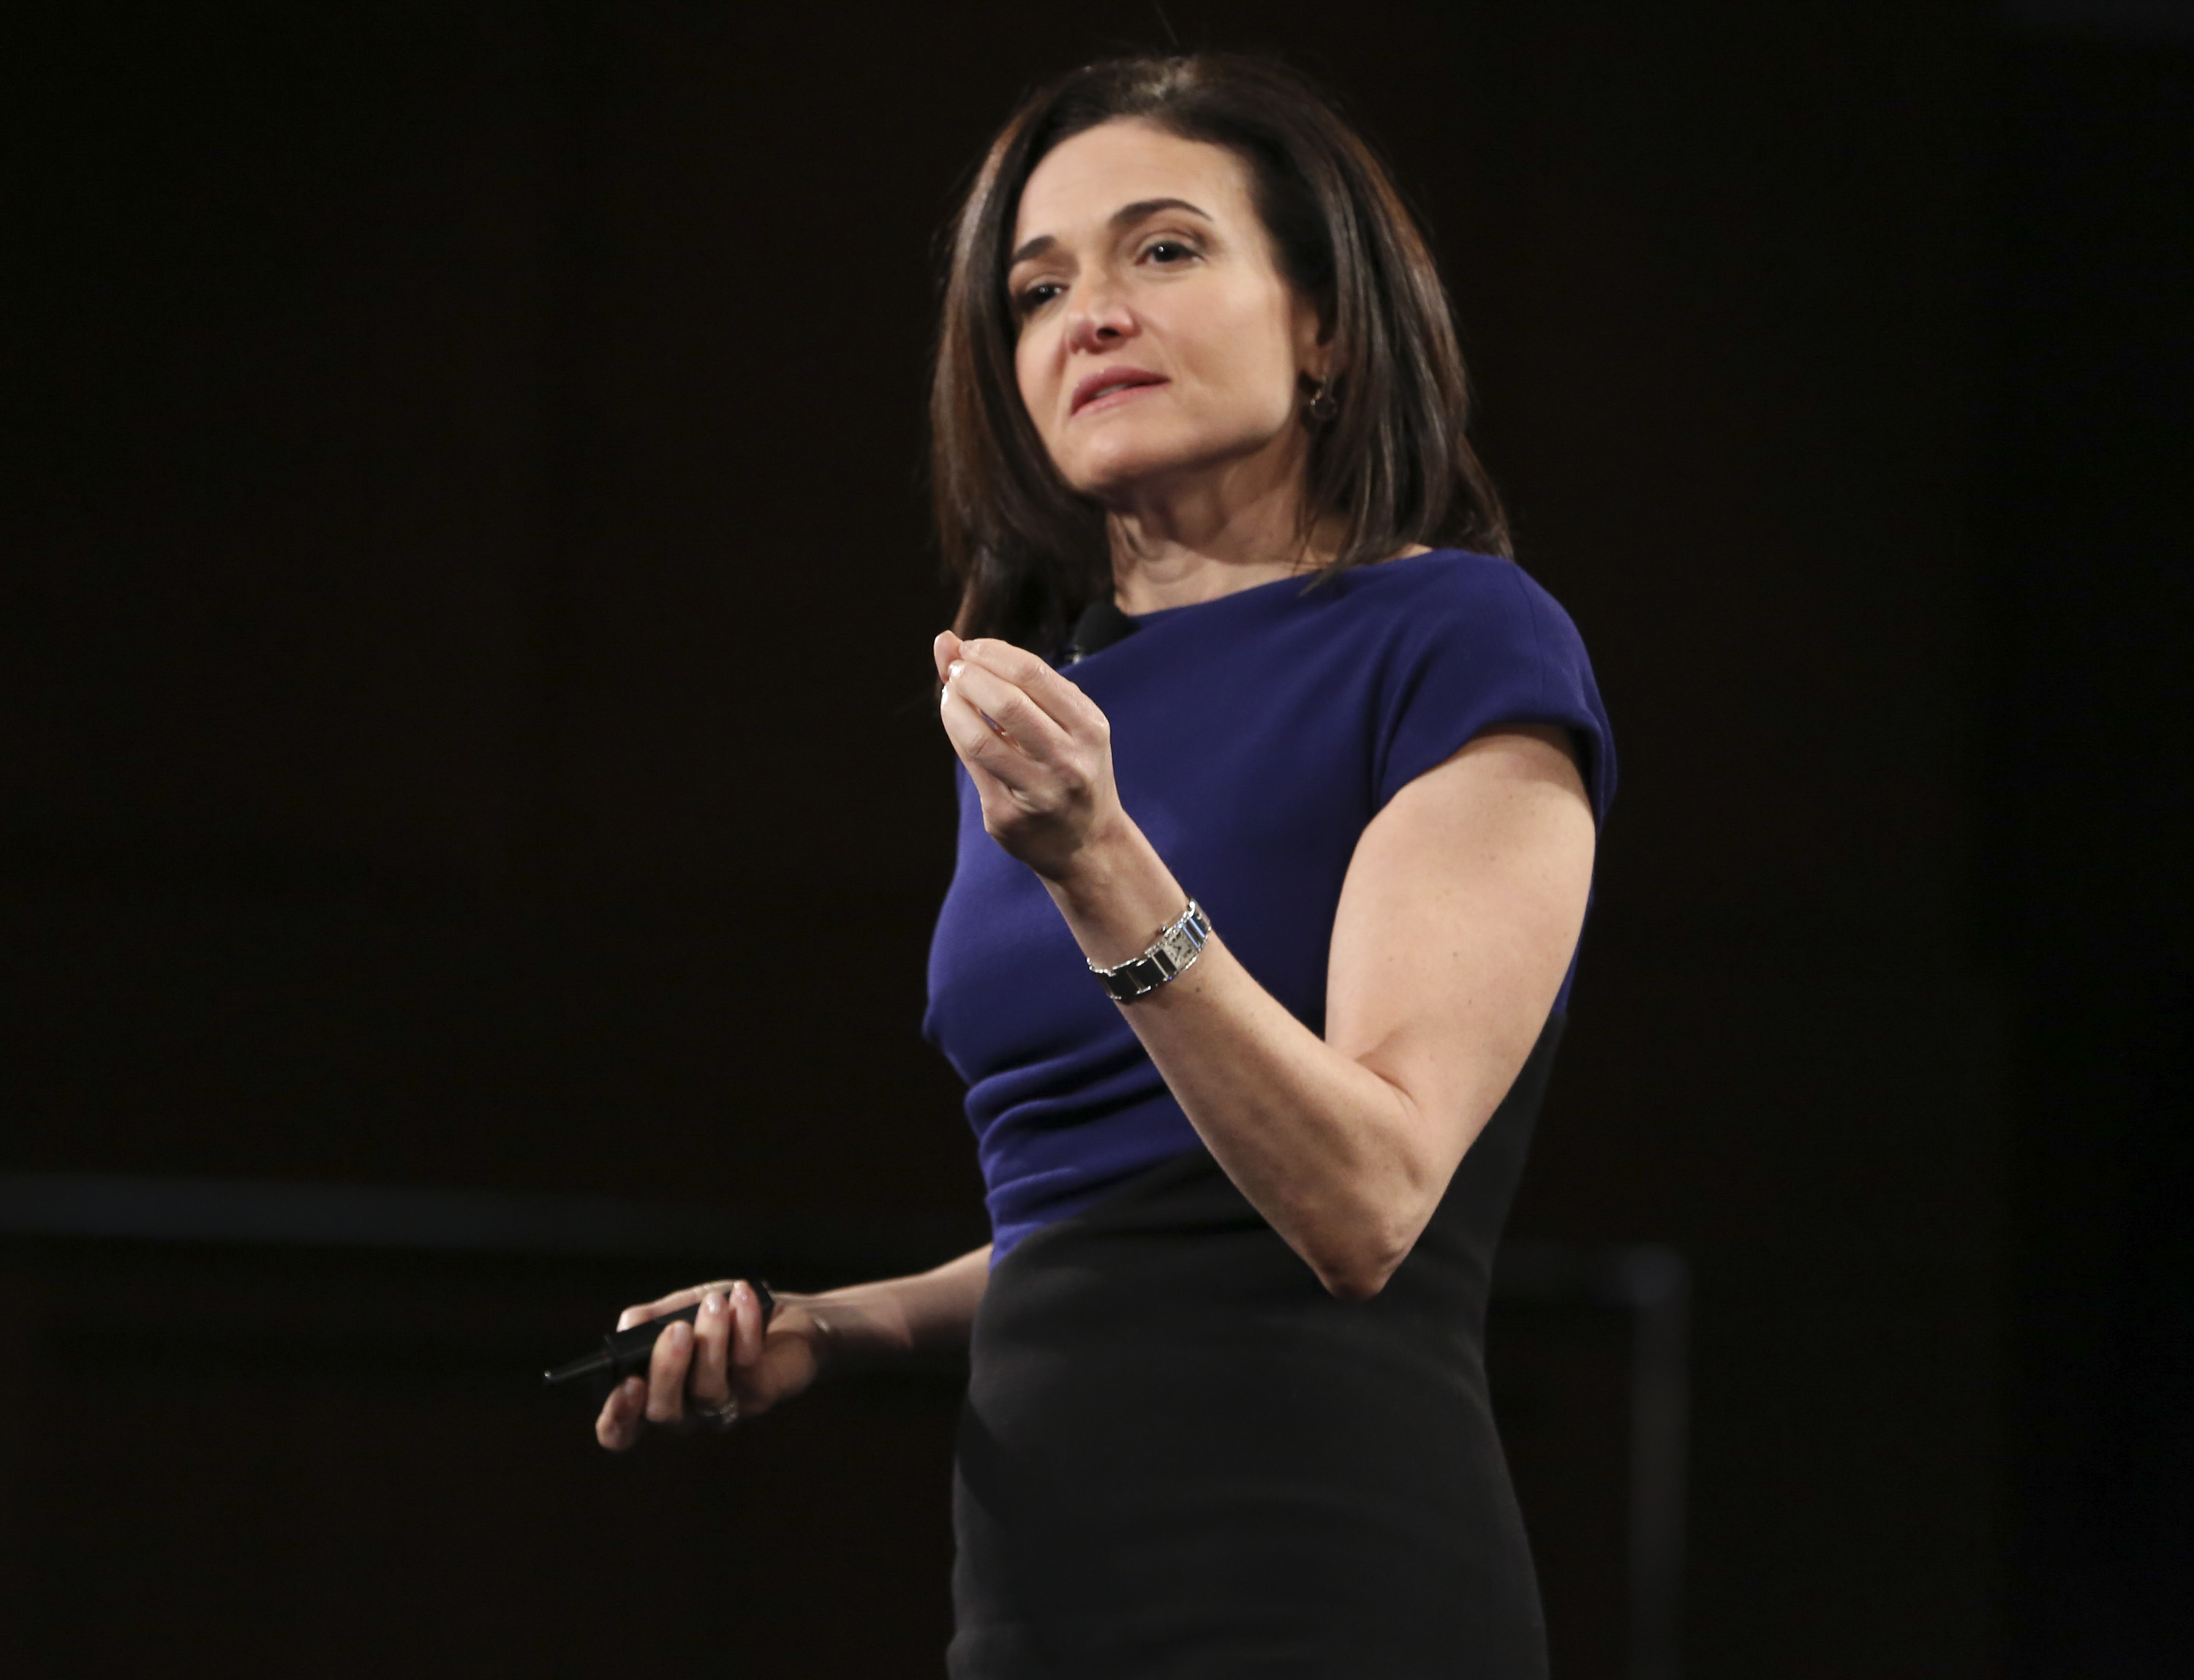 Facebook COO Sheryl Sandberg speaks on stage at the 2016 MAKERS Conference Day 2 at the Terrenea Resort in Rancho Palos Verdes, Calif. on Feb. 2, 2016.